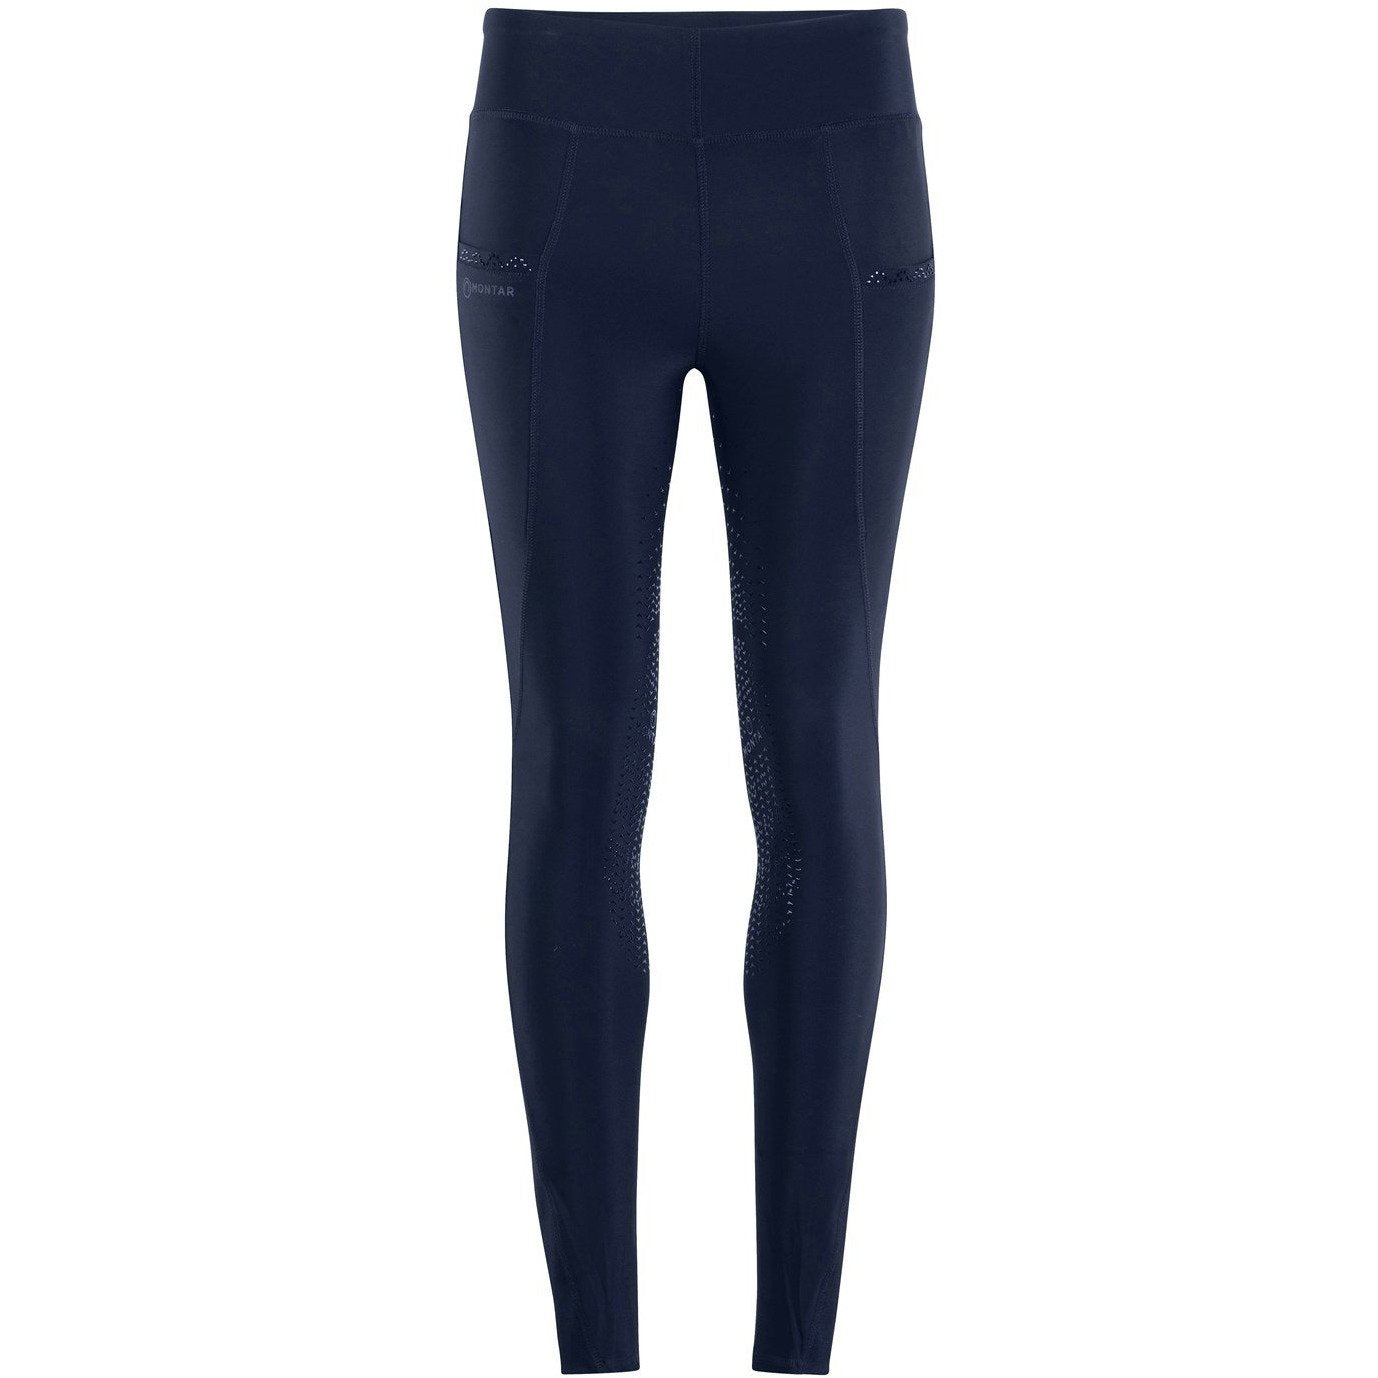 Linnea Mon-ShapeTight Pull-On Tights - Navy, Kneegrip